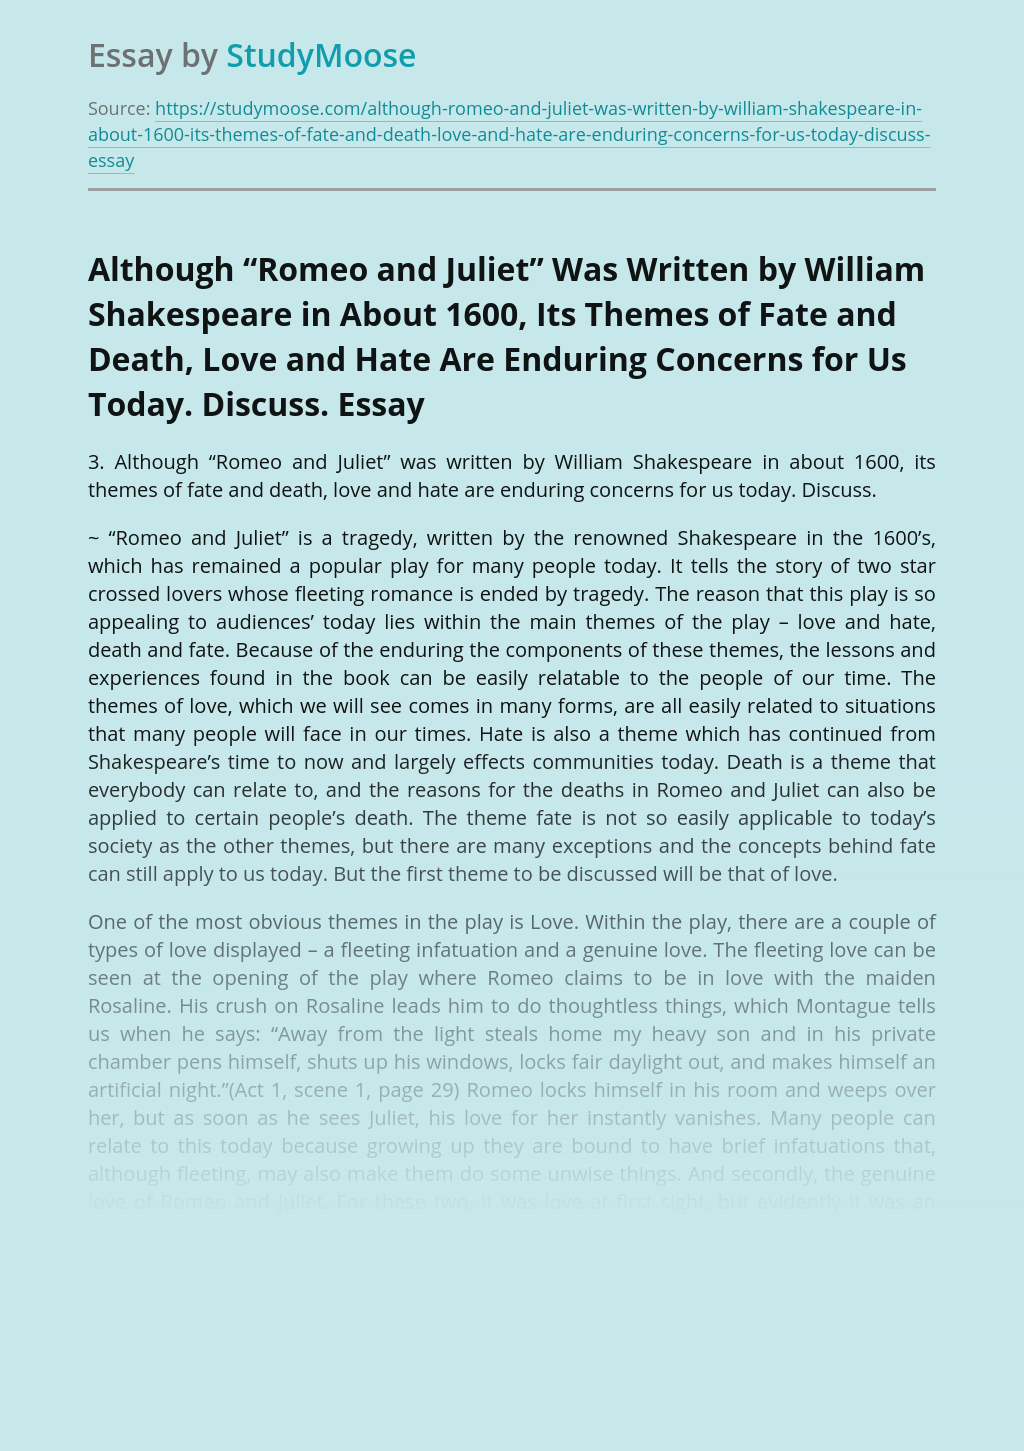 """Although """"Romeo and Juliet"""" Was Written by William Shakespeare in About 1600, Its Themes of Fate and Death, Love and Hate Are Enduring Concerns for Us Today. Discuss."""